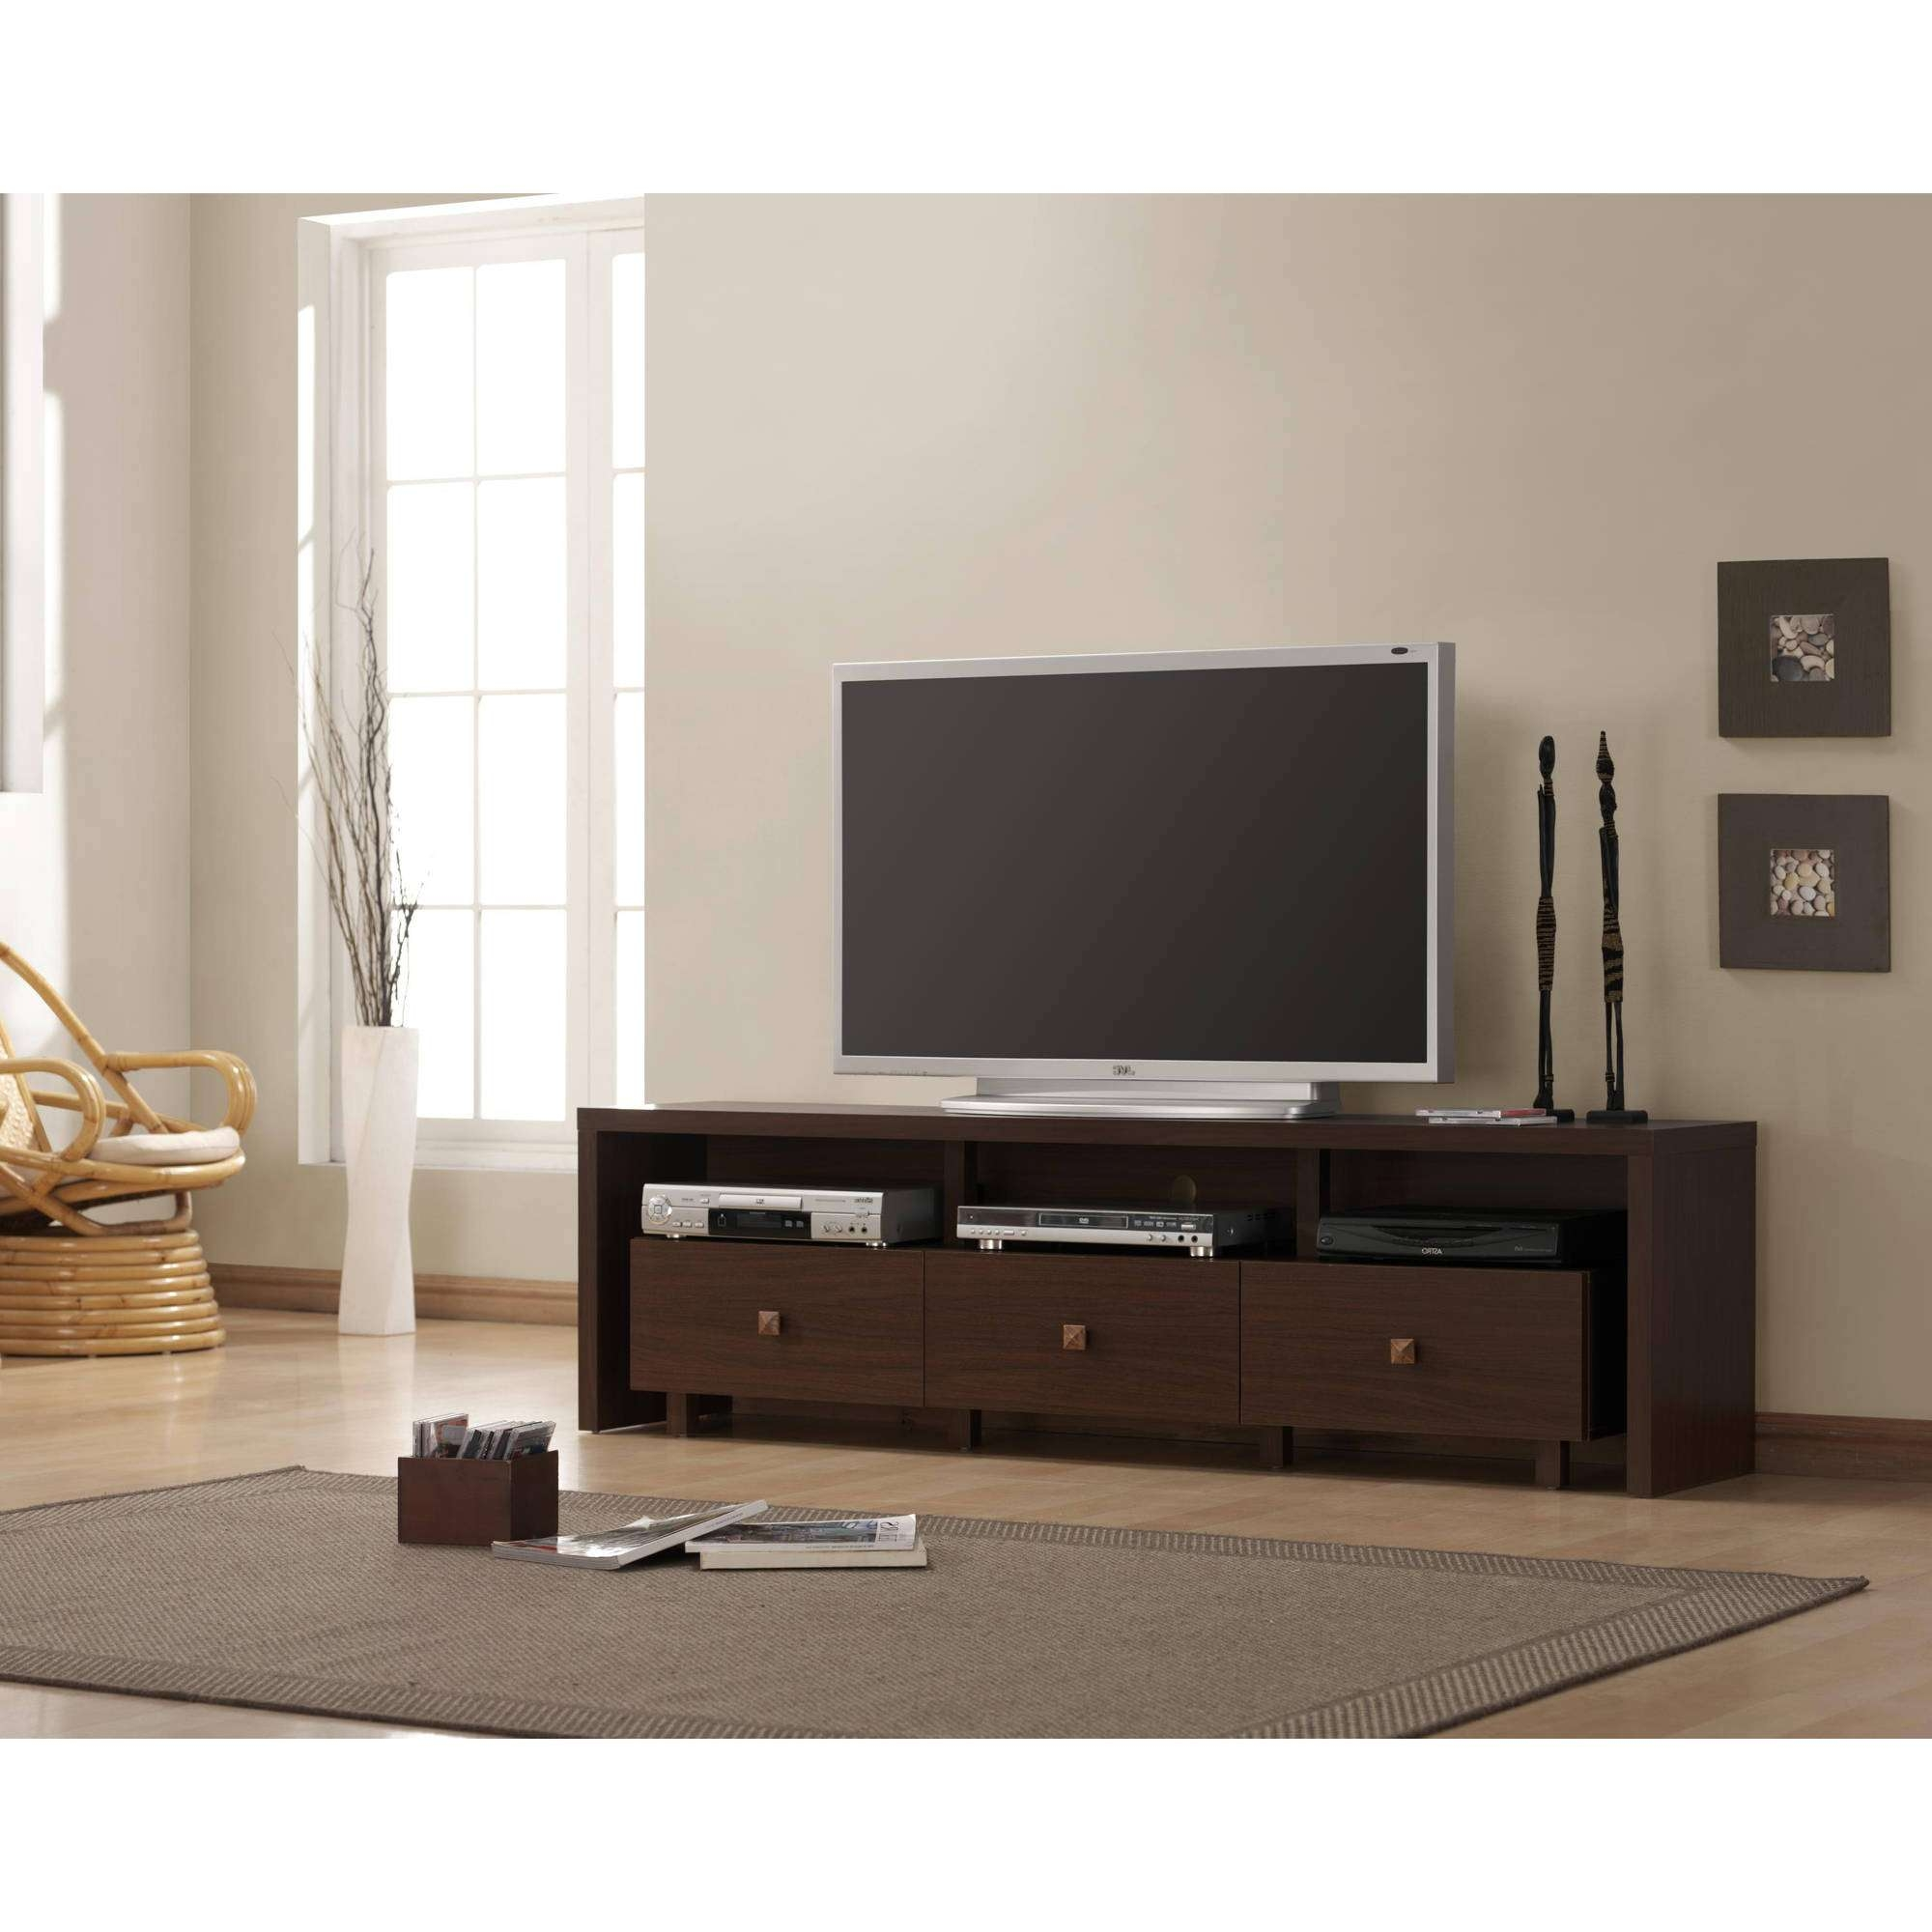 Double Nexera Allure In Tv Stand Along With Doors Nexera Allure Pertaining To Modern 60 Inch Tv Stands (View 5 of 20)